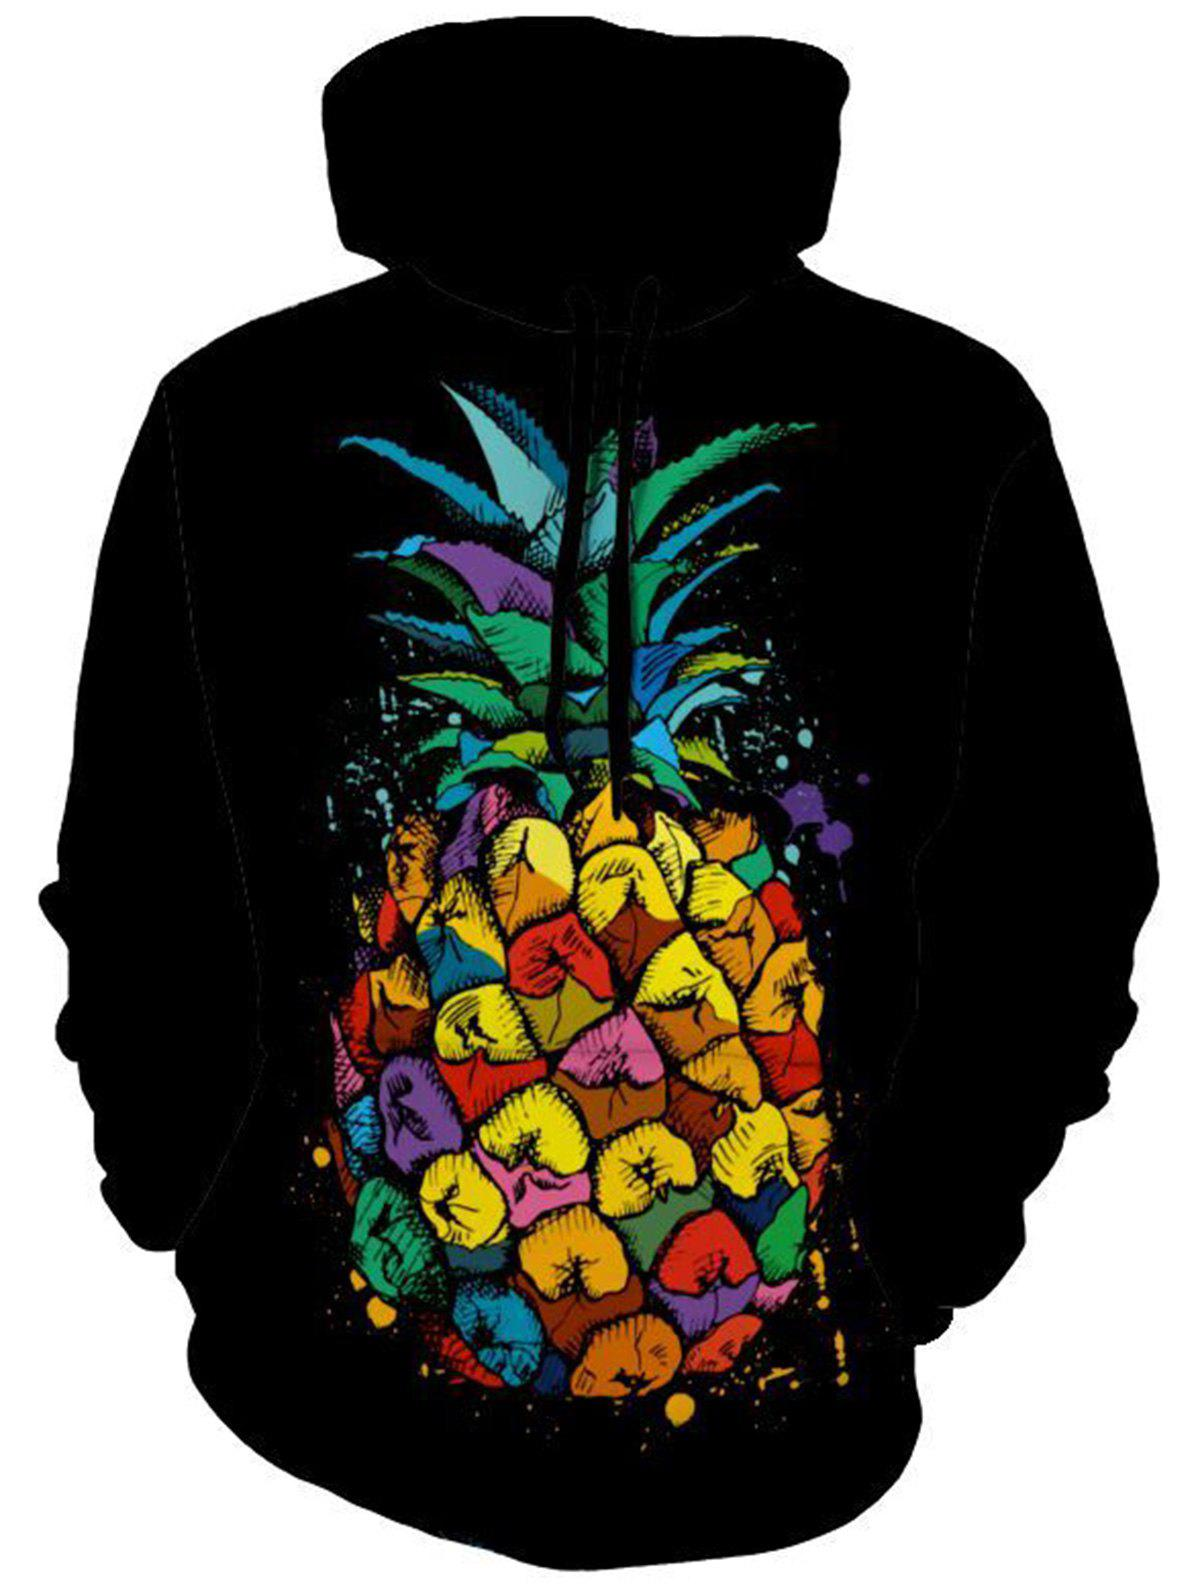 Sweat à Capuche Pull-over avec Fruits et Ananas Imprimé - Noir XL